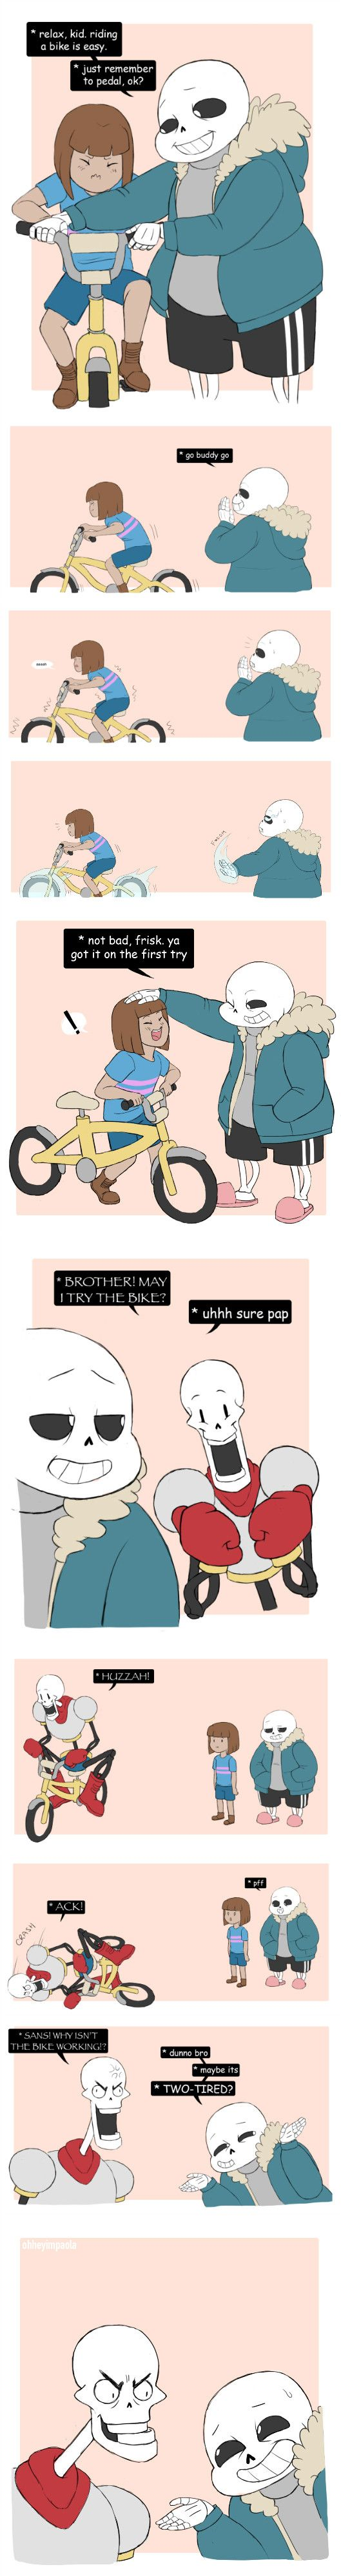 Sans, Frisk, and Papyrus - comic - http://ohheyimpaola.tumblr.com/post/133349439890/papyrus-is-getting-real-tired-of-your-shit-sans